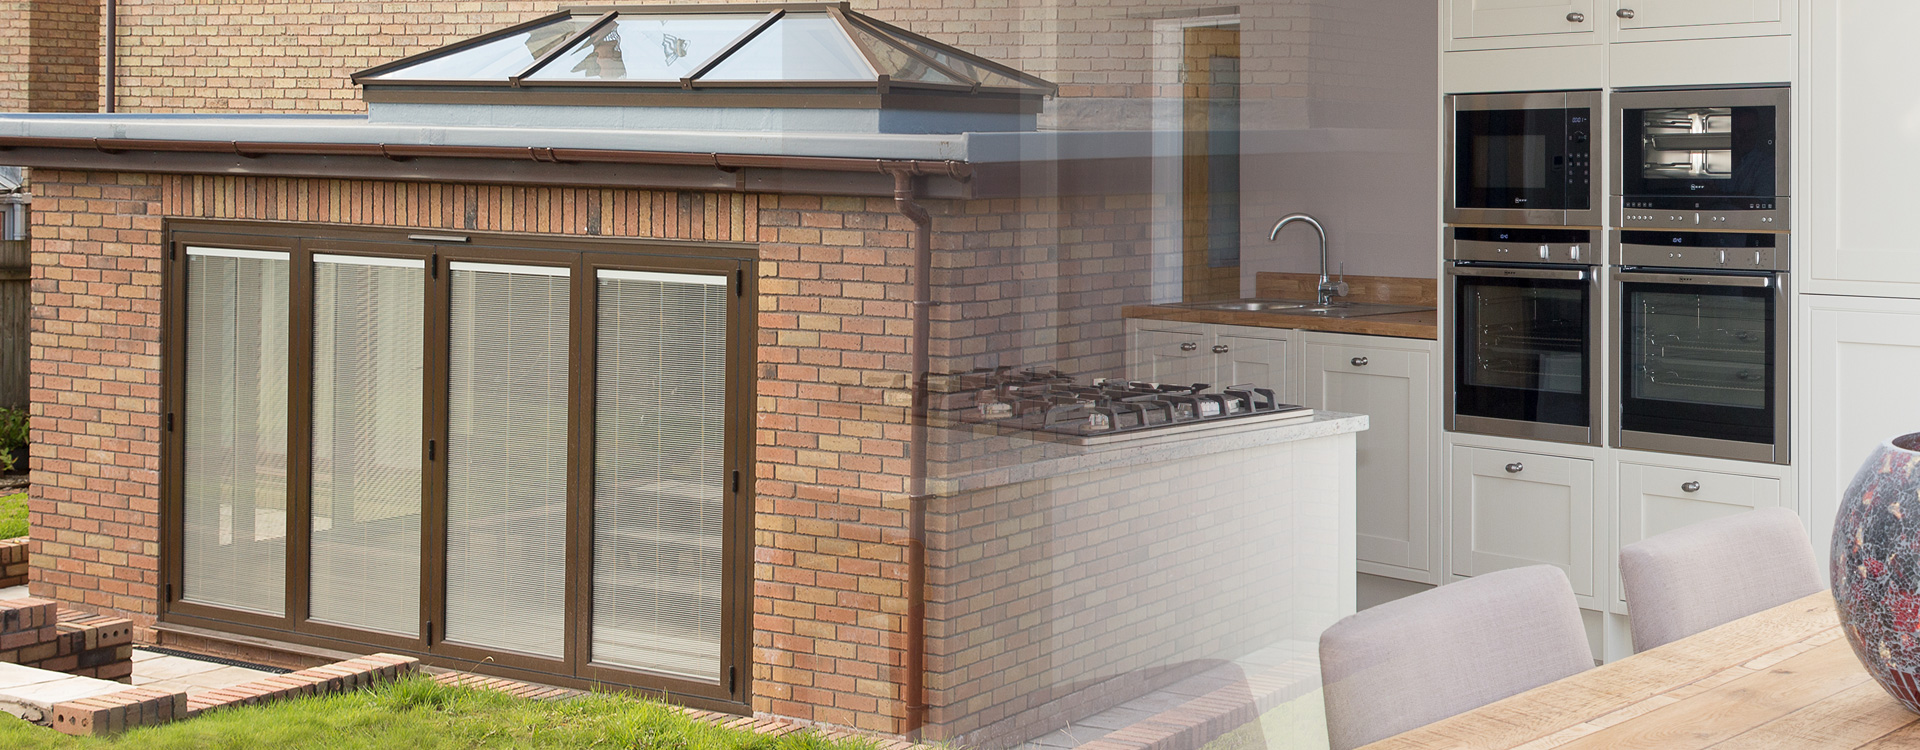 Residential new build, extensions, conversions & renovations